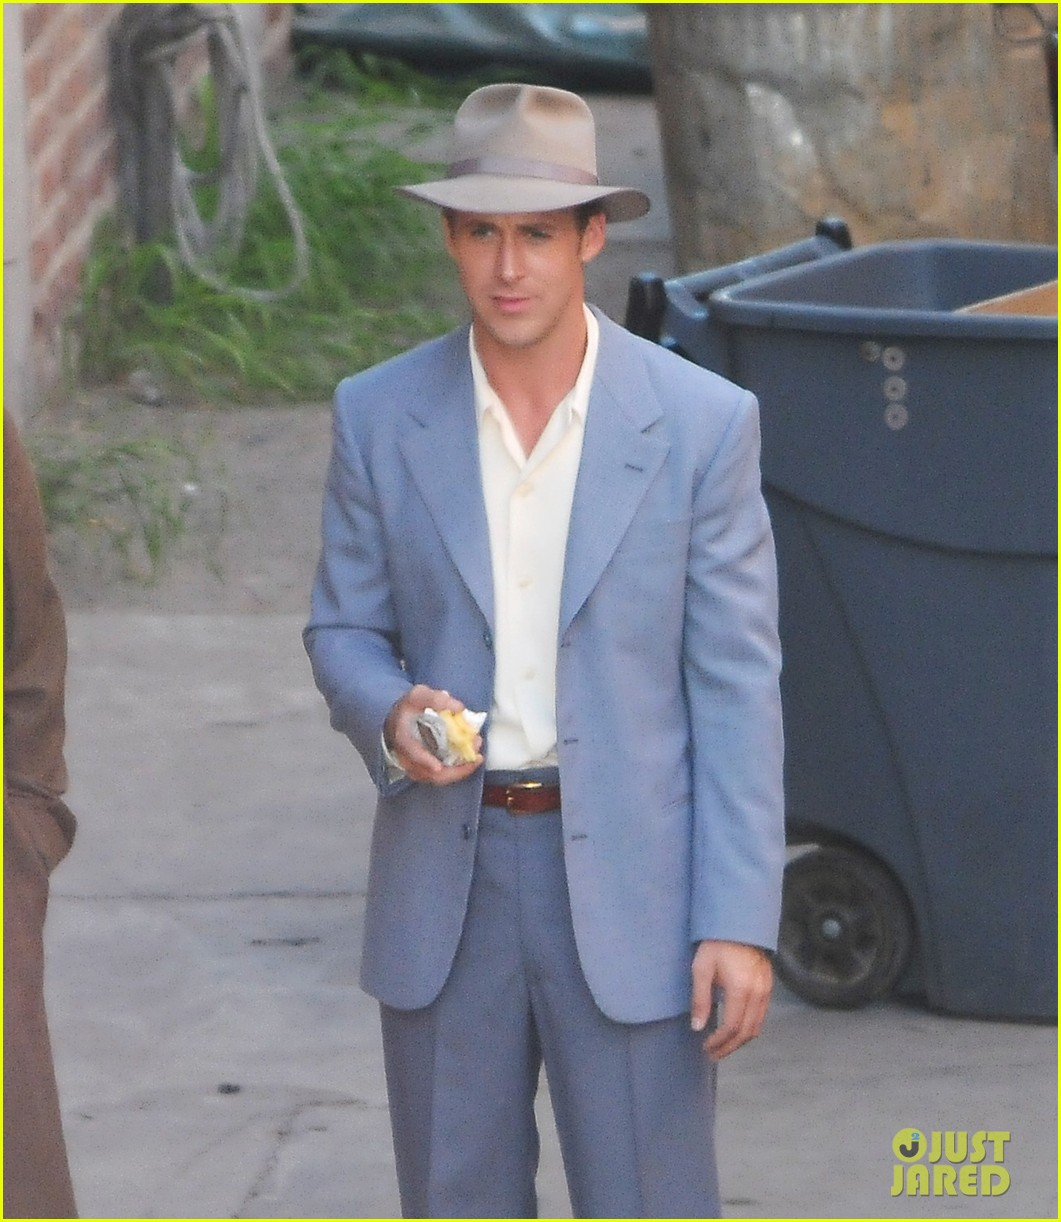 Ryan Gosling Suit Ryan gosling baby blue suit 02